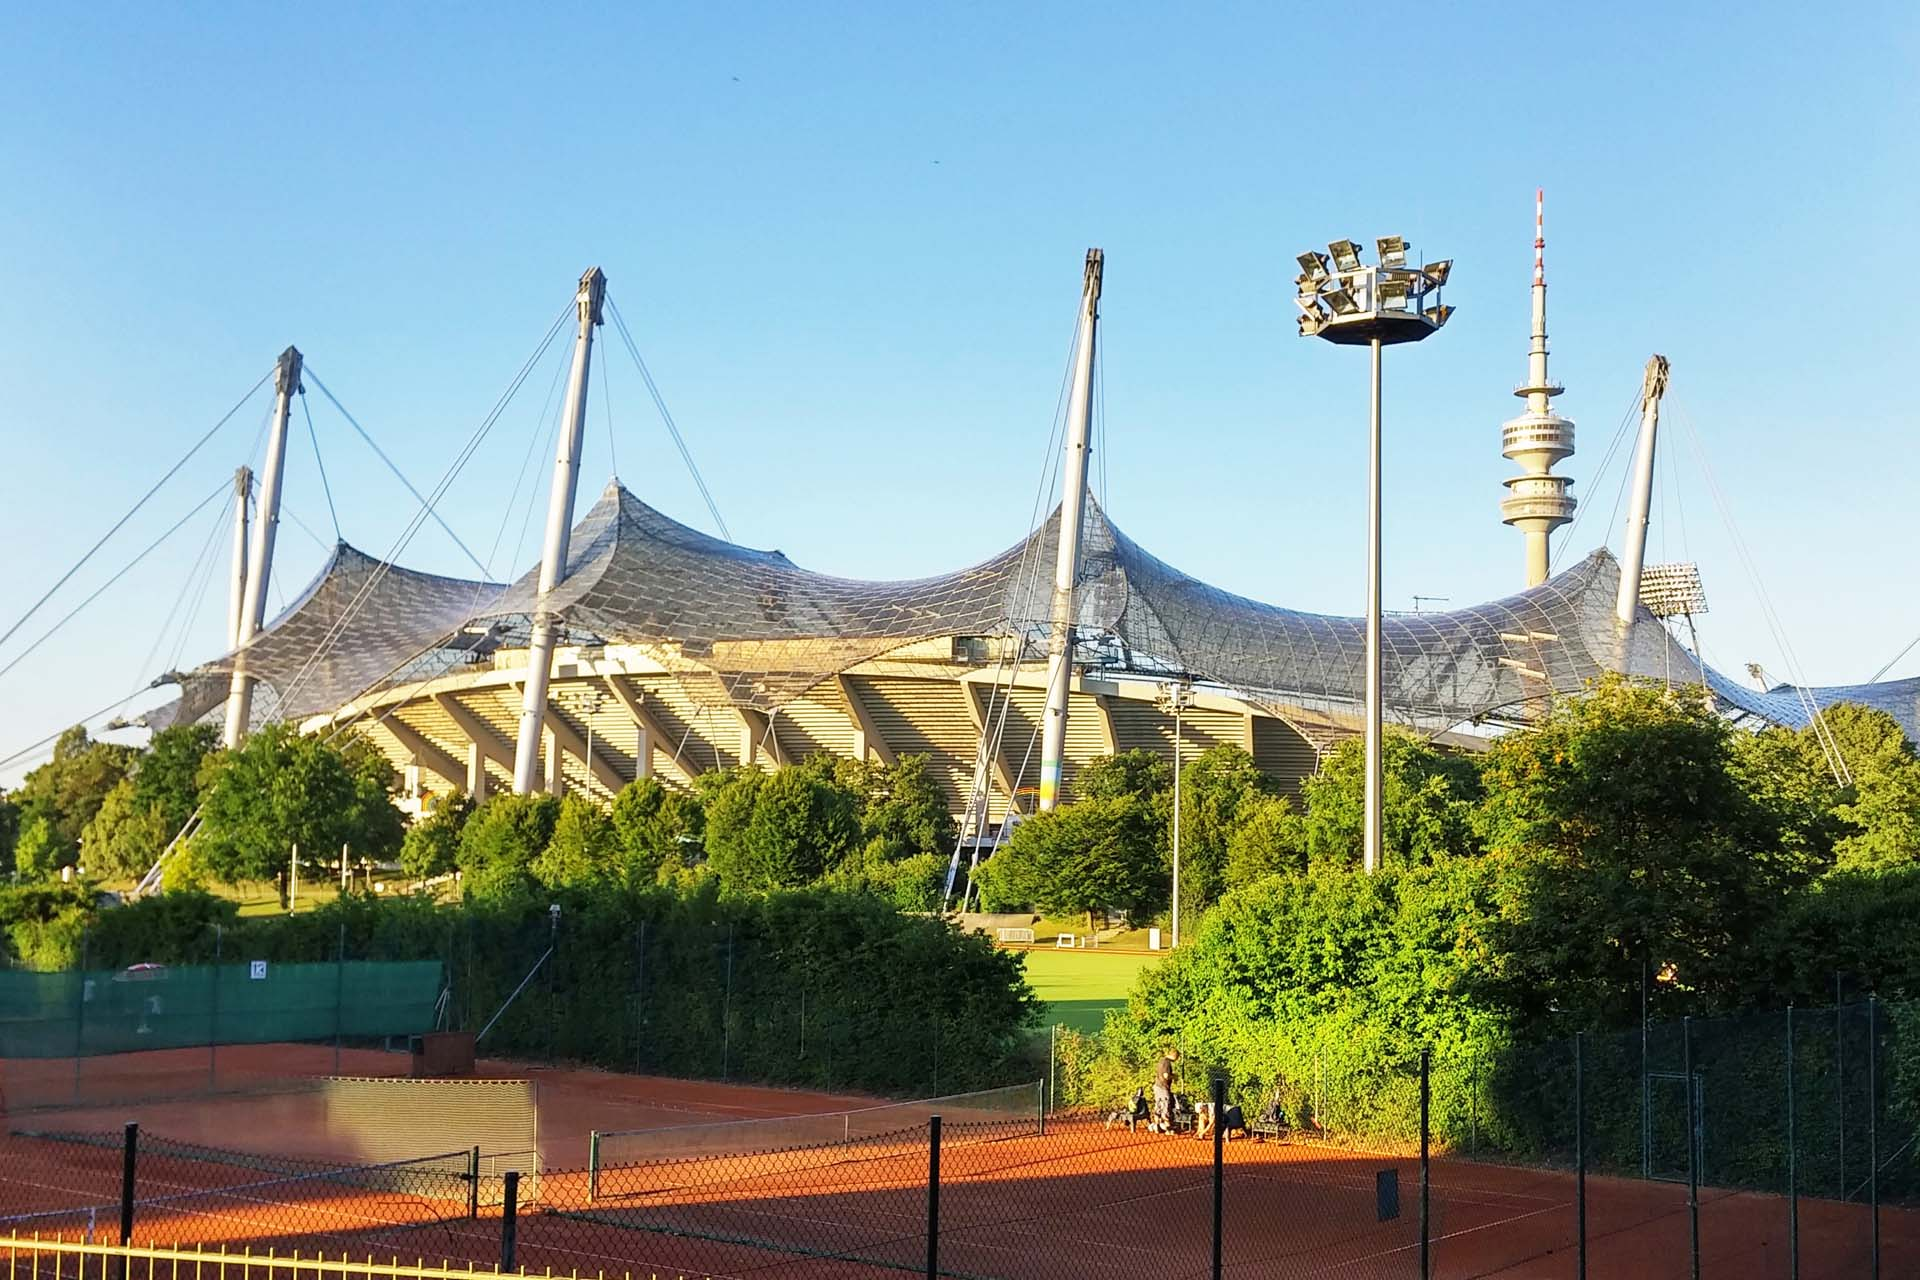 Munich's Olympiapark – Olympic Park from 1972 Summer Olympics